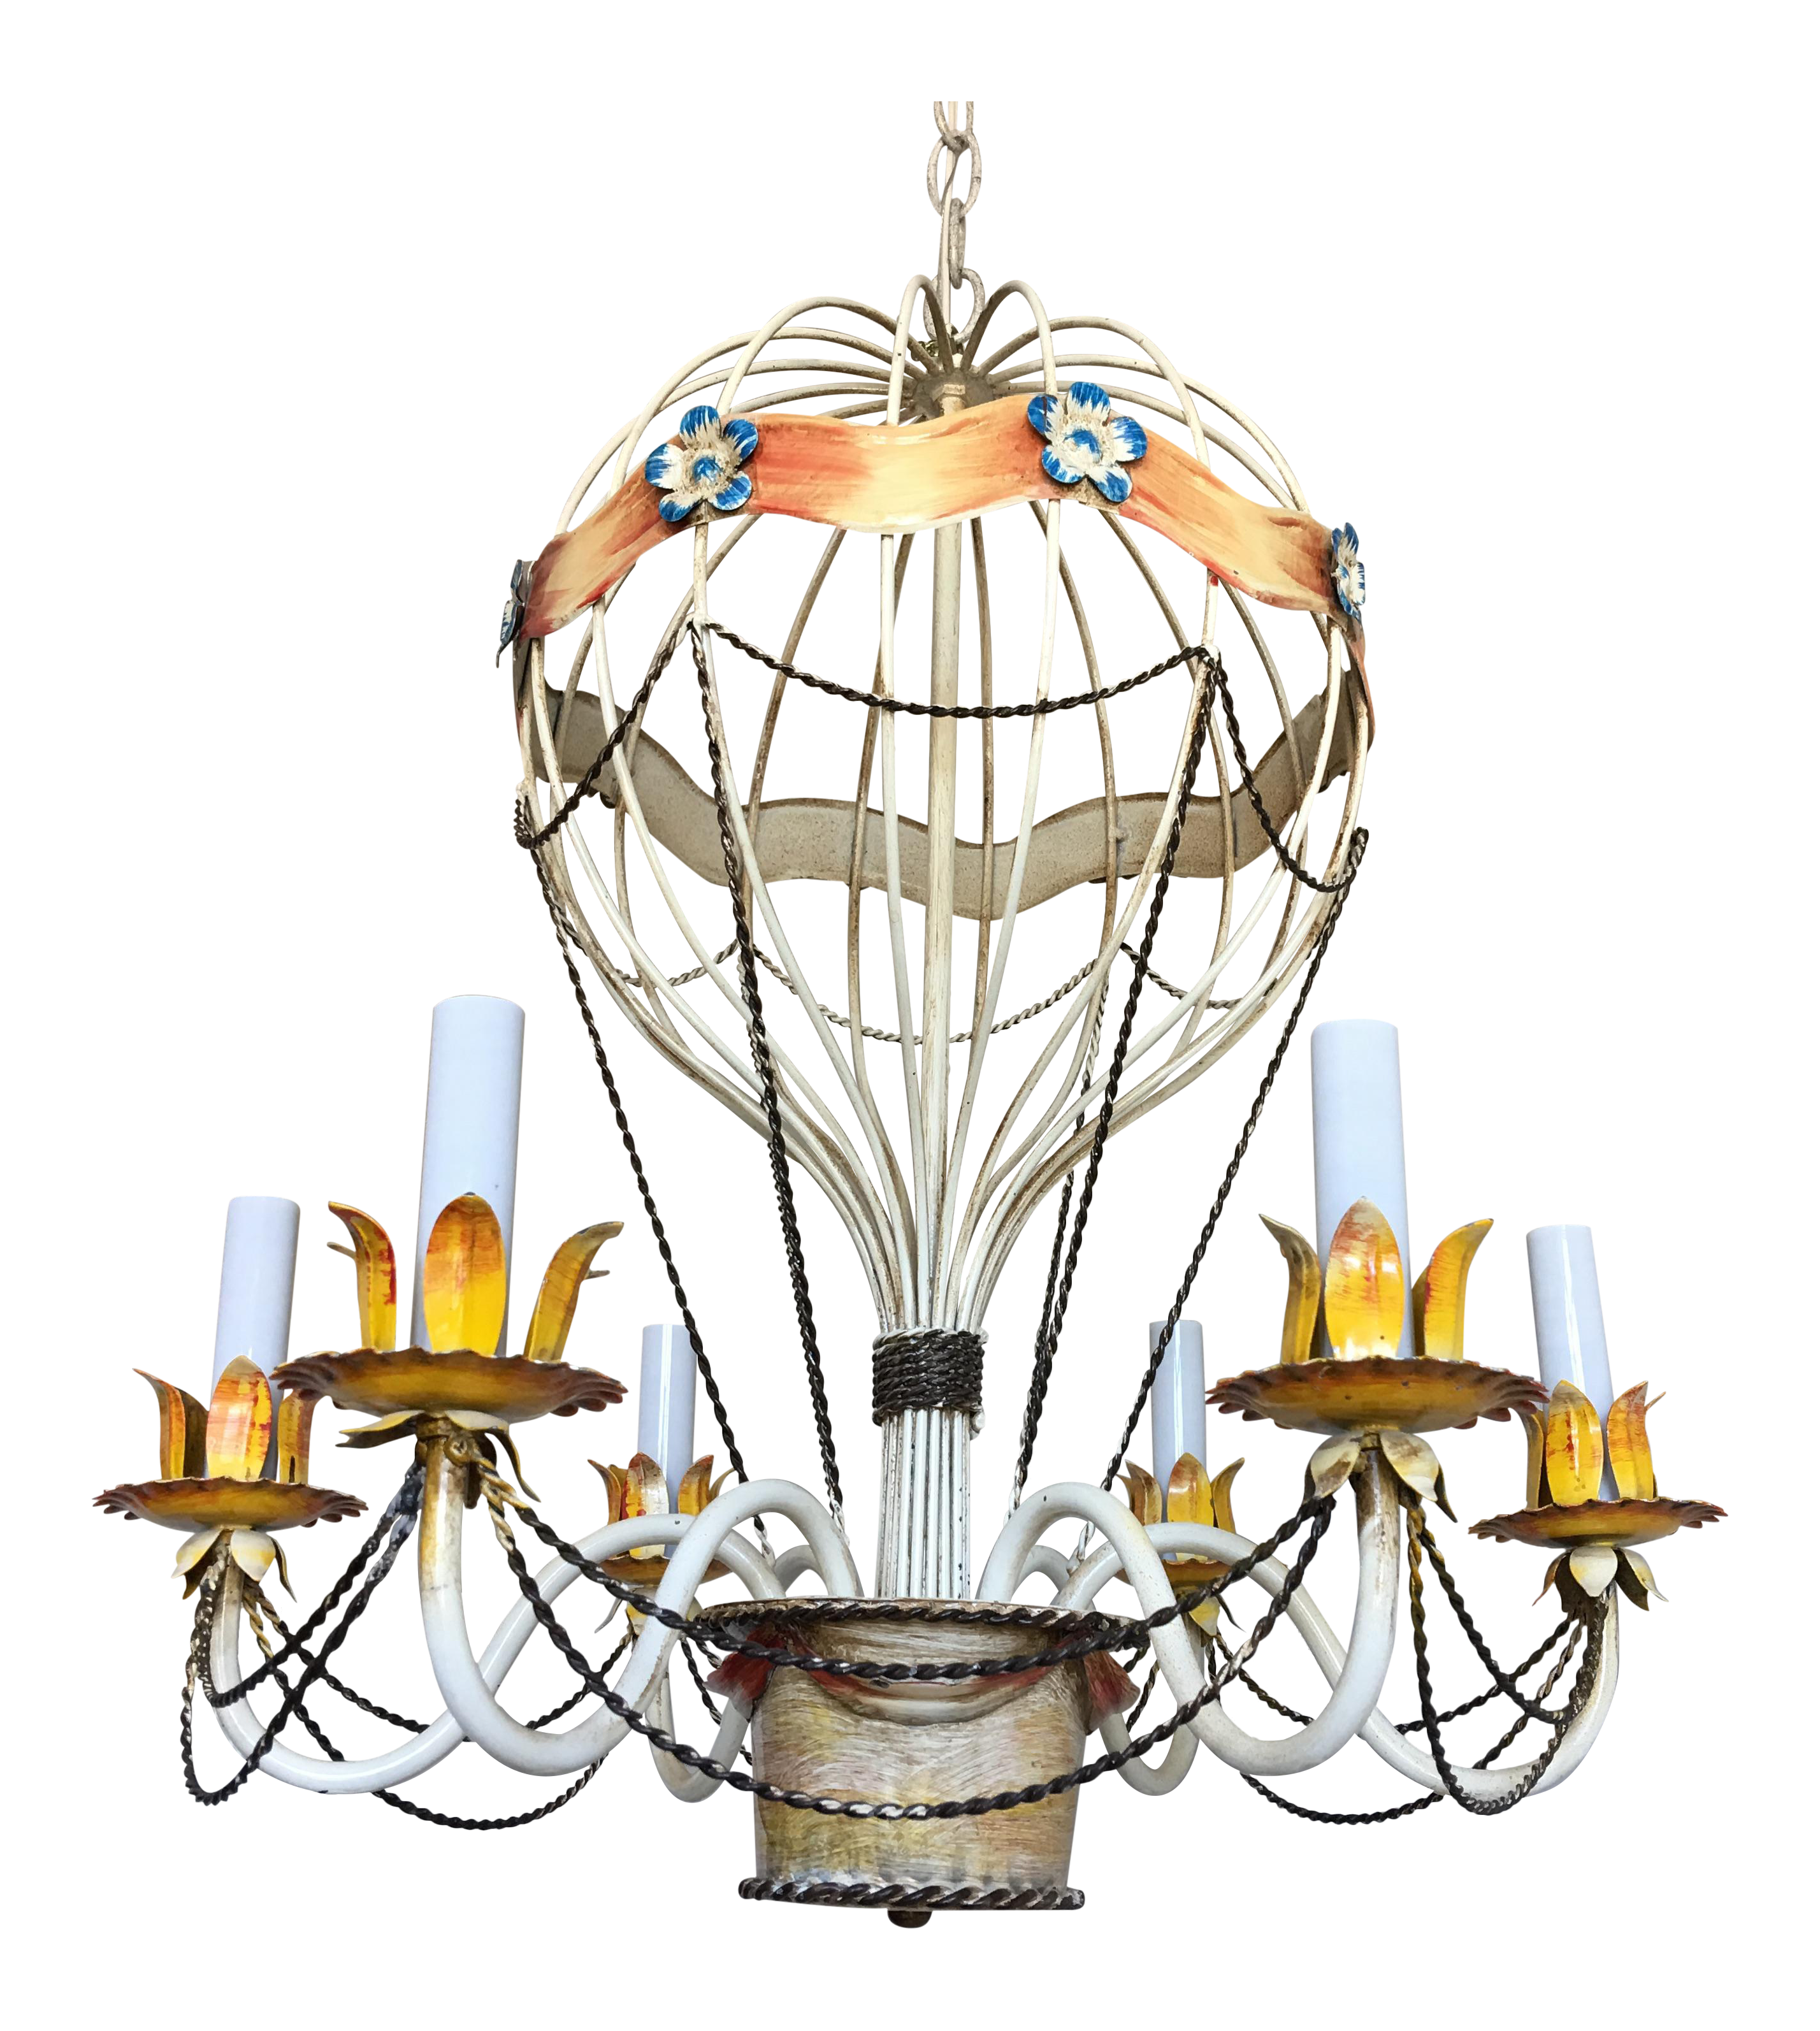 lot nyr air hot late light patinated cen form six a metal lotfinder details balloon chandelier